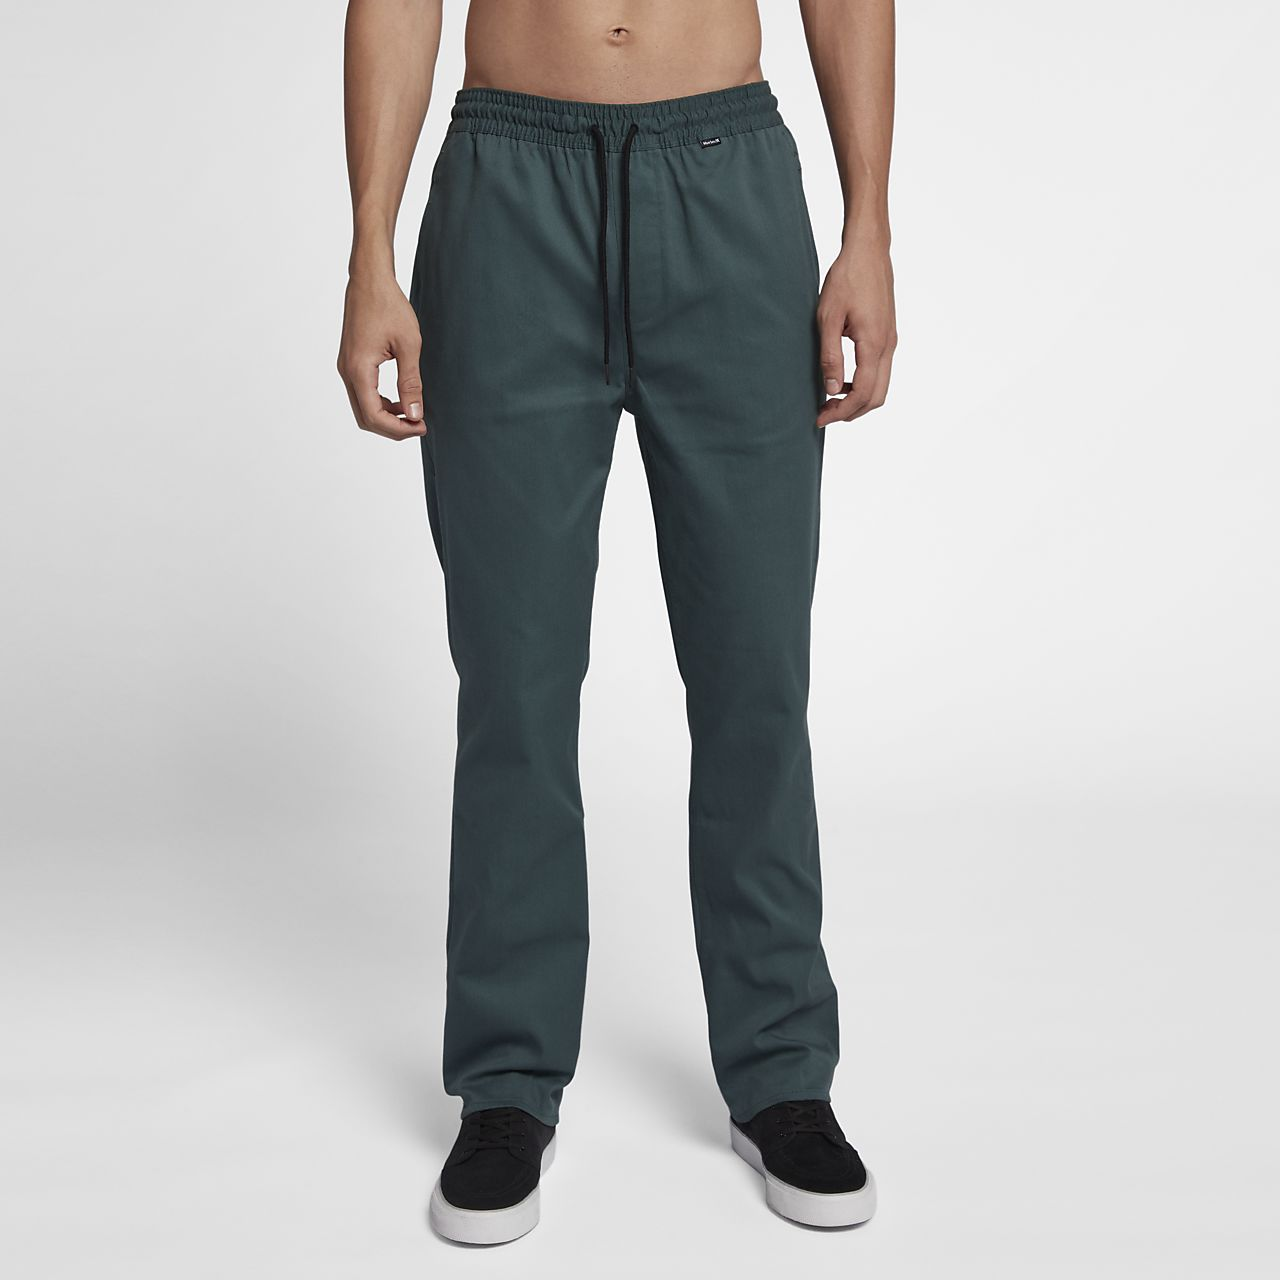 Hurley Dri-FIT Ditch Pantalons - Home